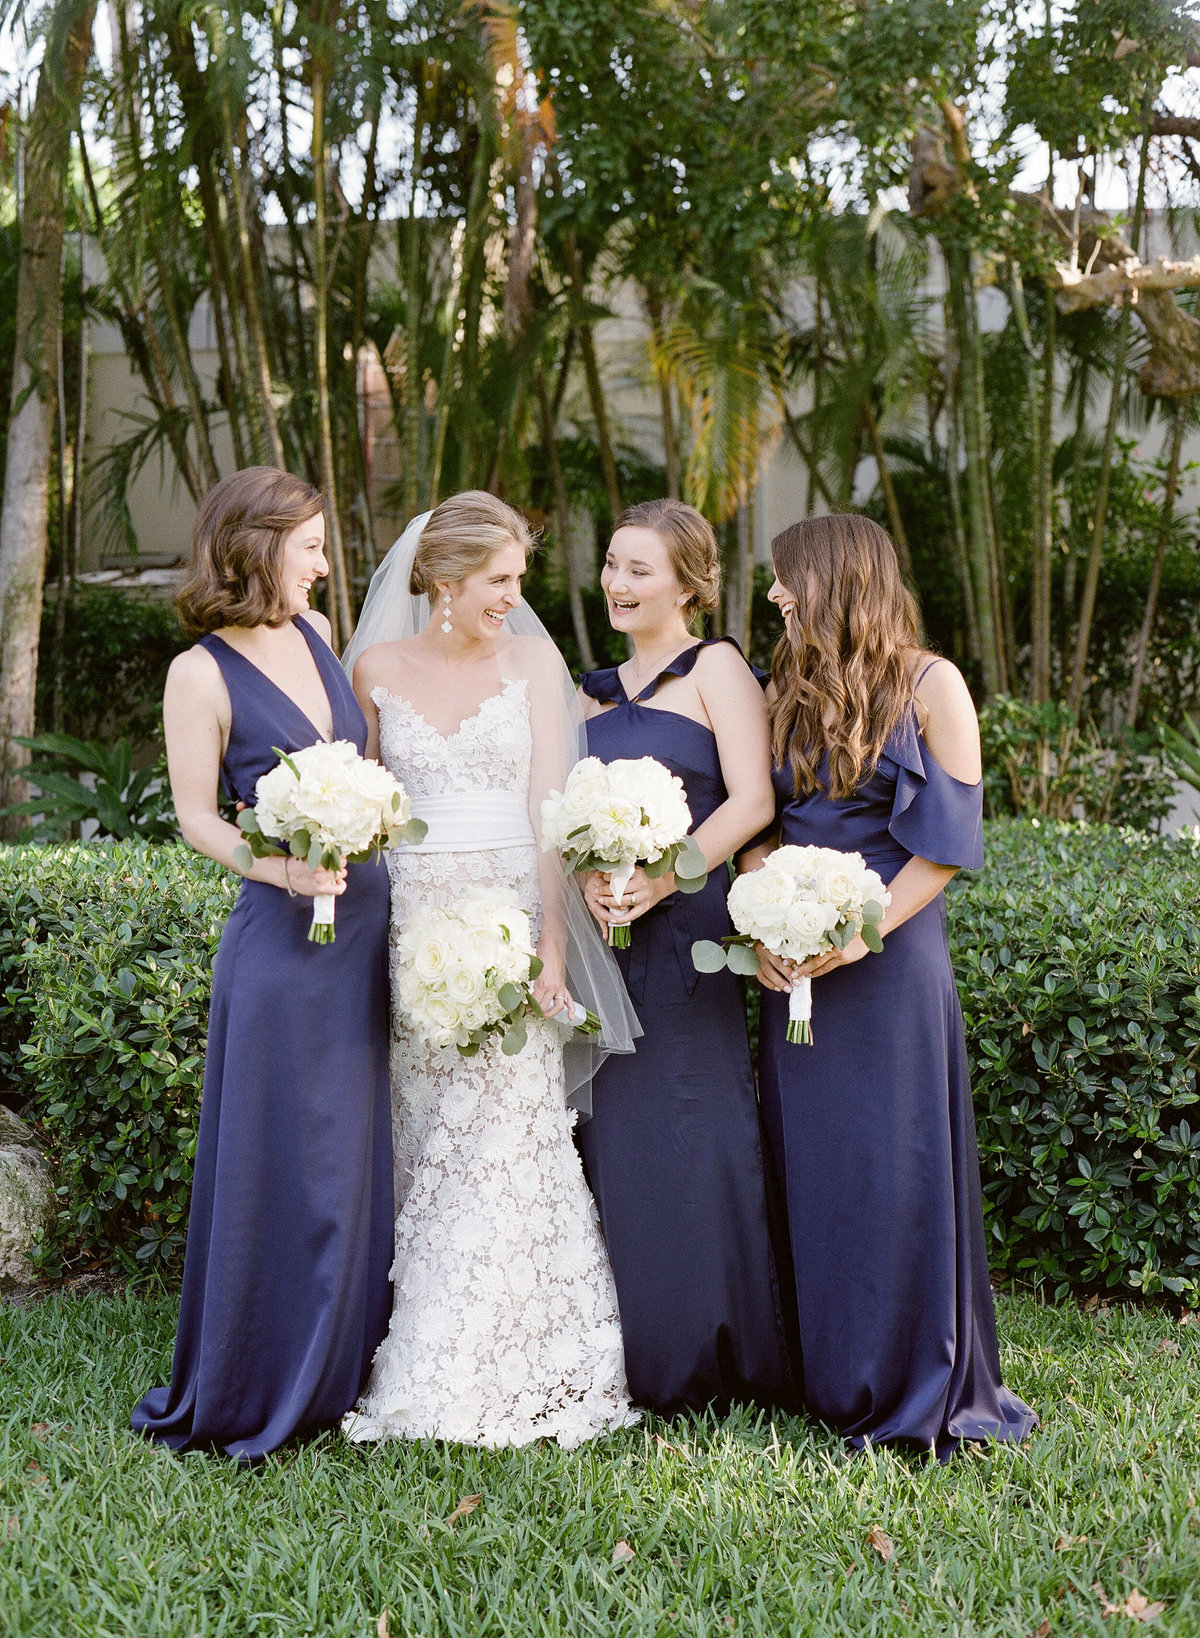 29-KTMerry-weddings-bridal-party-navy-Palm-Beach